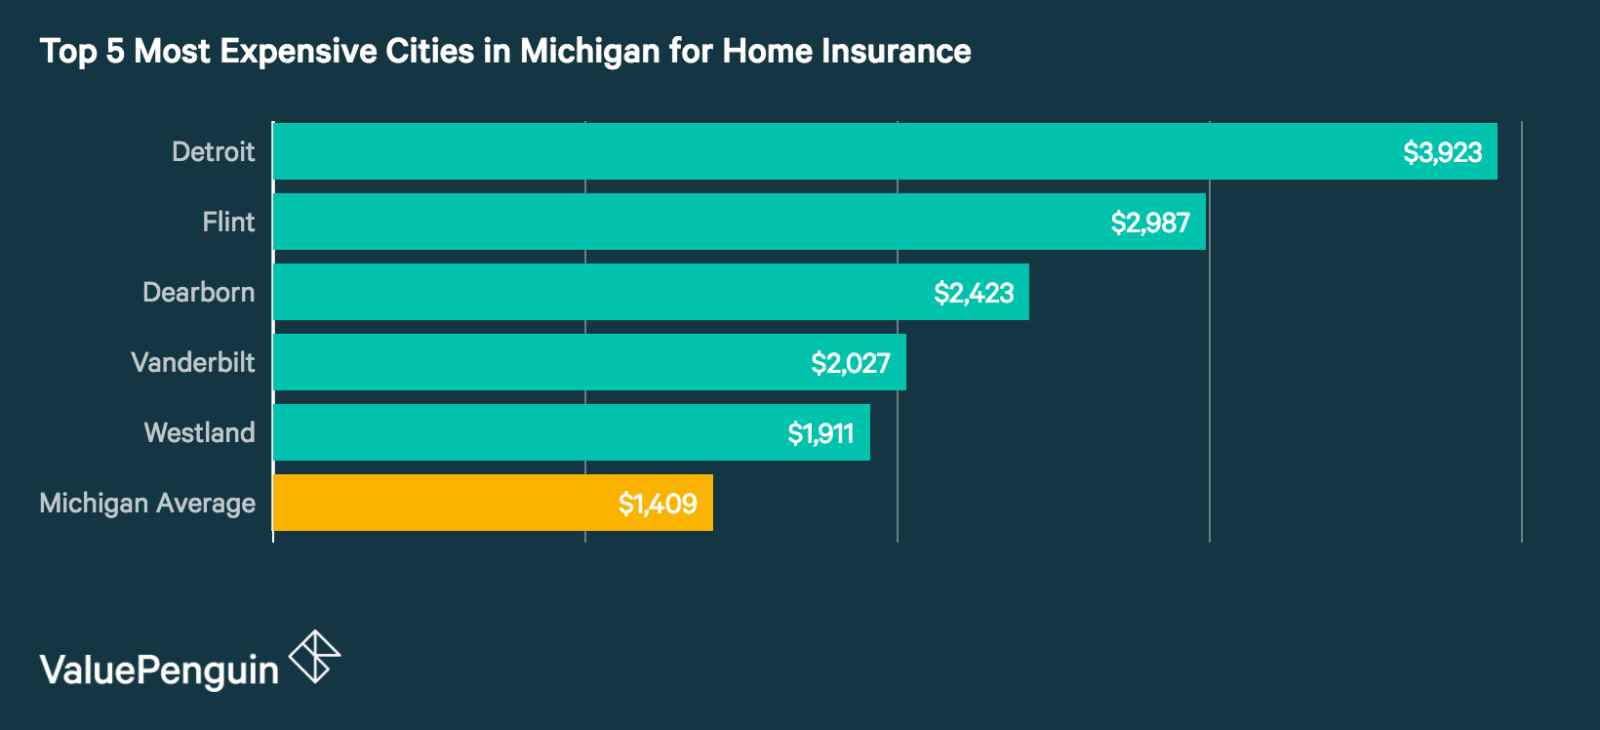 Top 5 Most Expensive Cities in Michigan for Homeowners Insurance